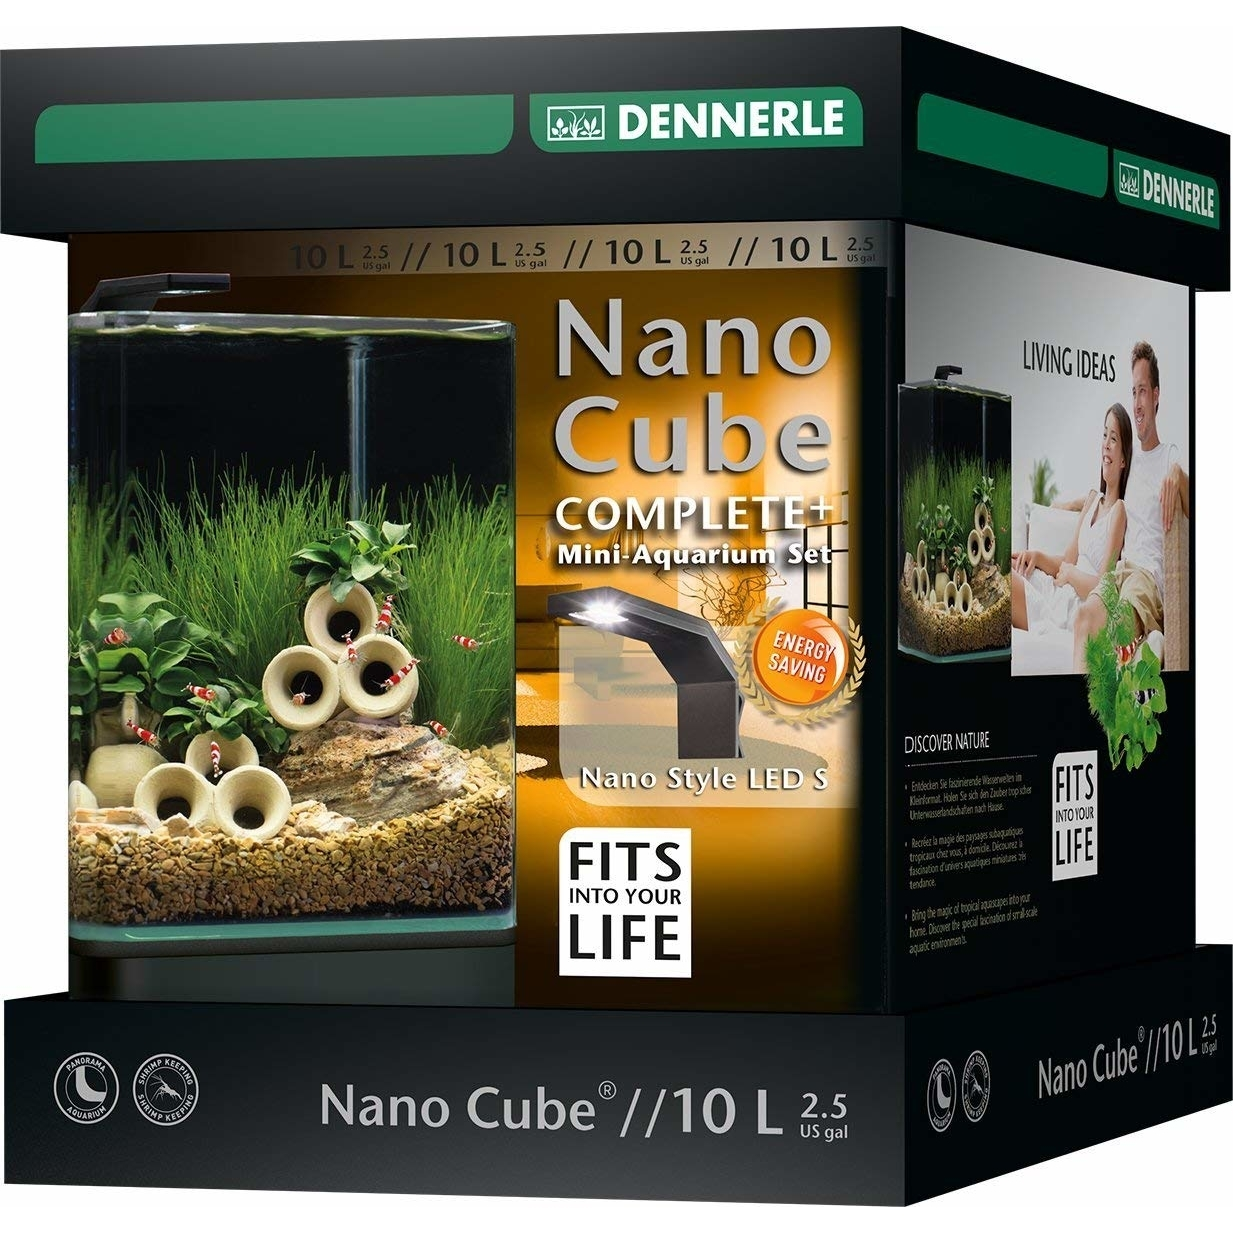 Dennerle NanoCube Complete+ Style LED Preview Image